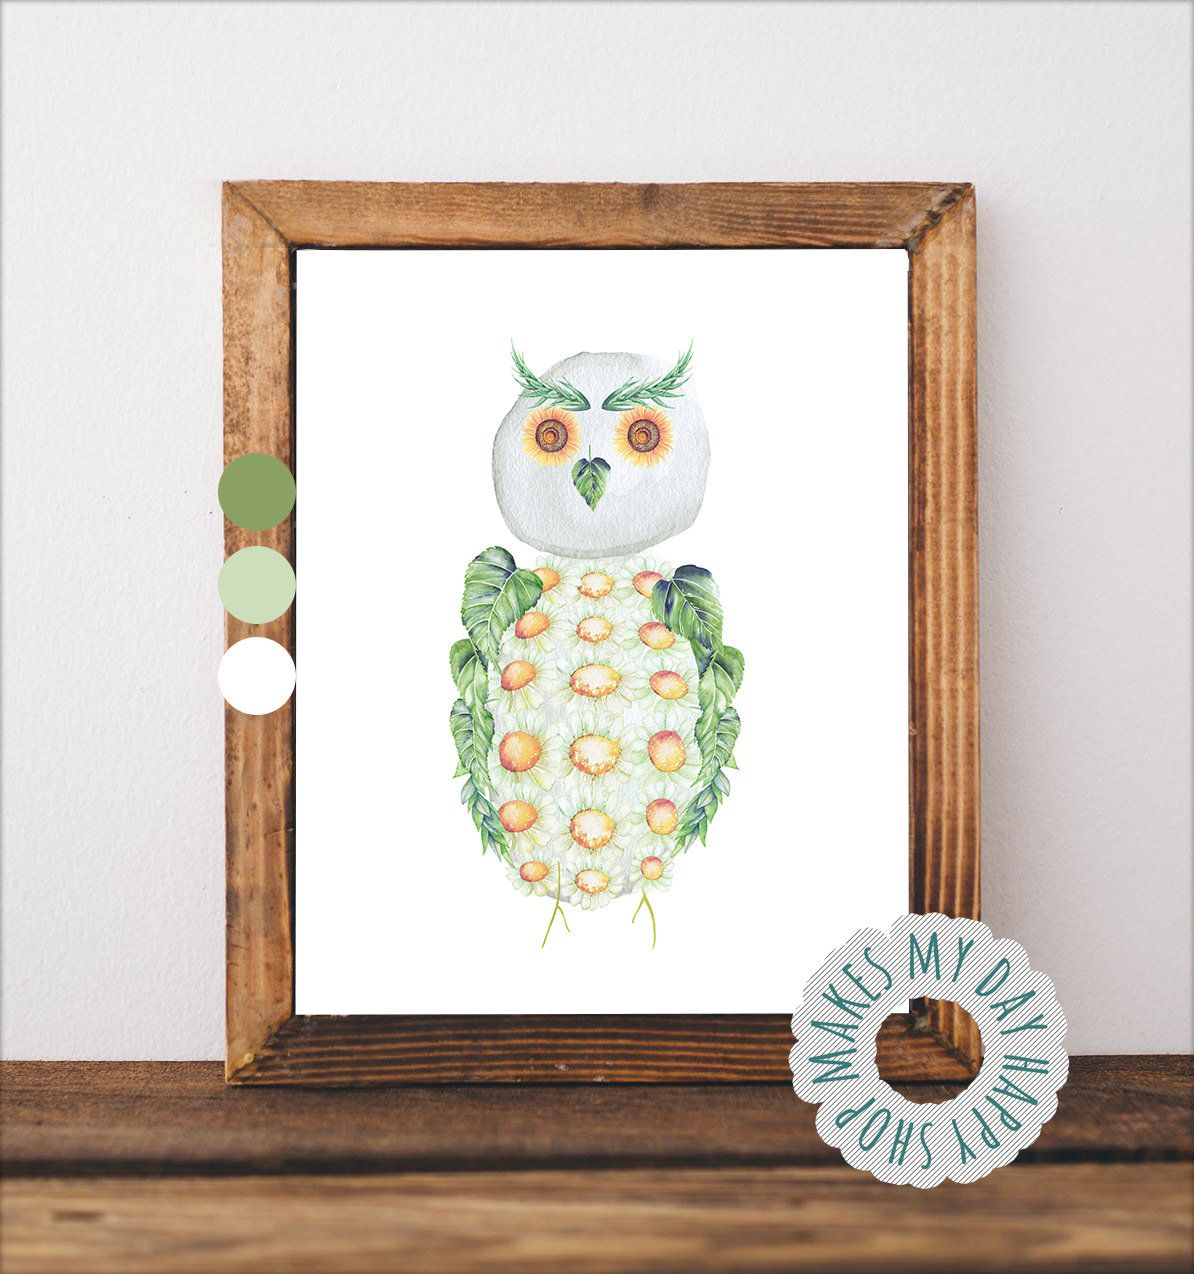 Cute Owl Decor Owl Nursery Baby Room Decor Cute Owl Sunflower Nursery Nursery